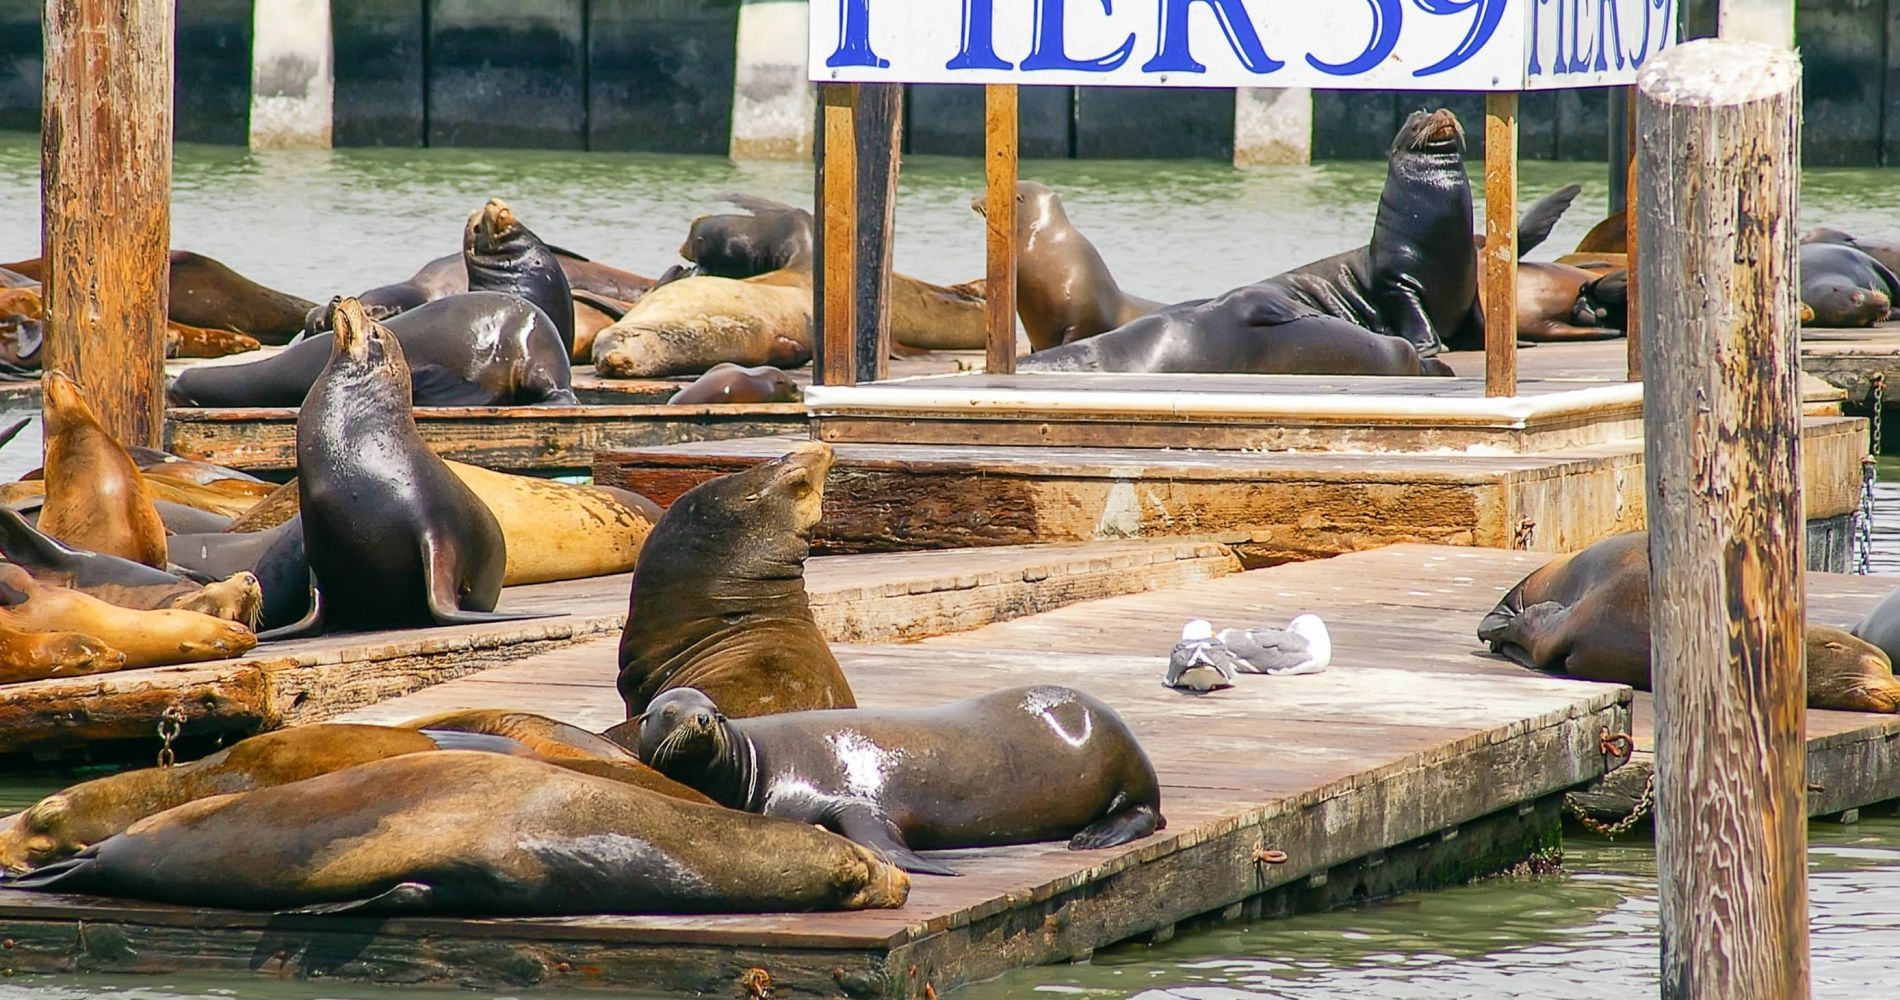 Listen to the Sea Lions at Pier 39 in San Francisco